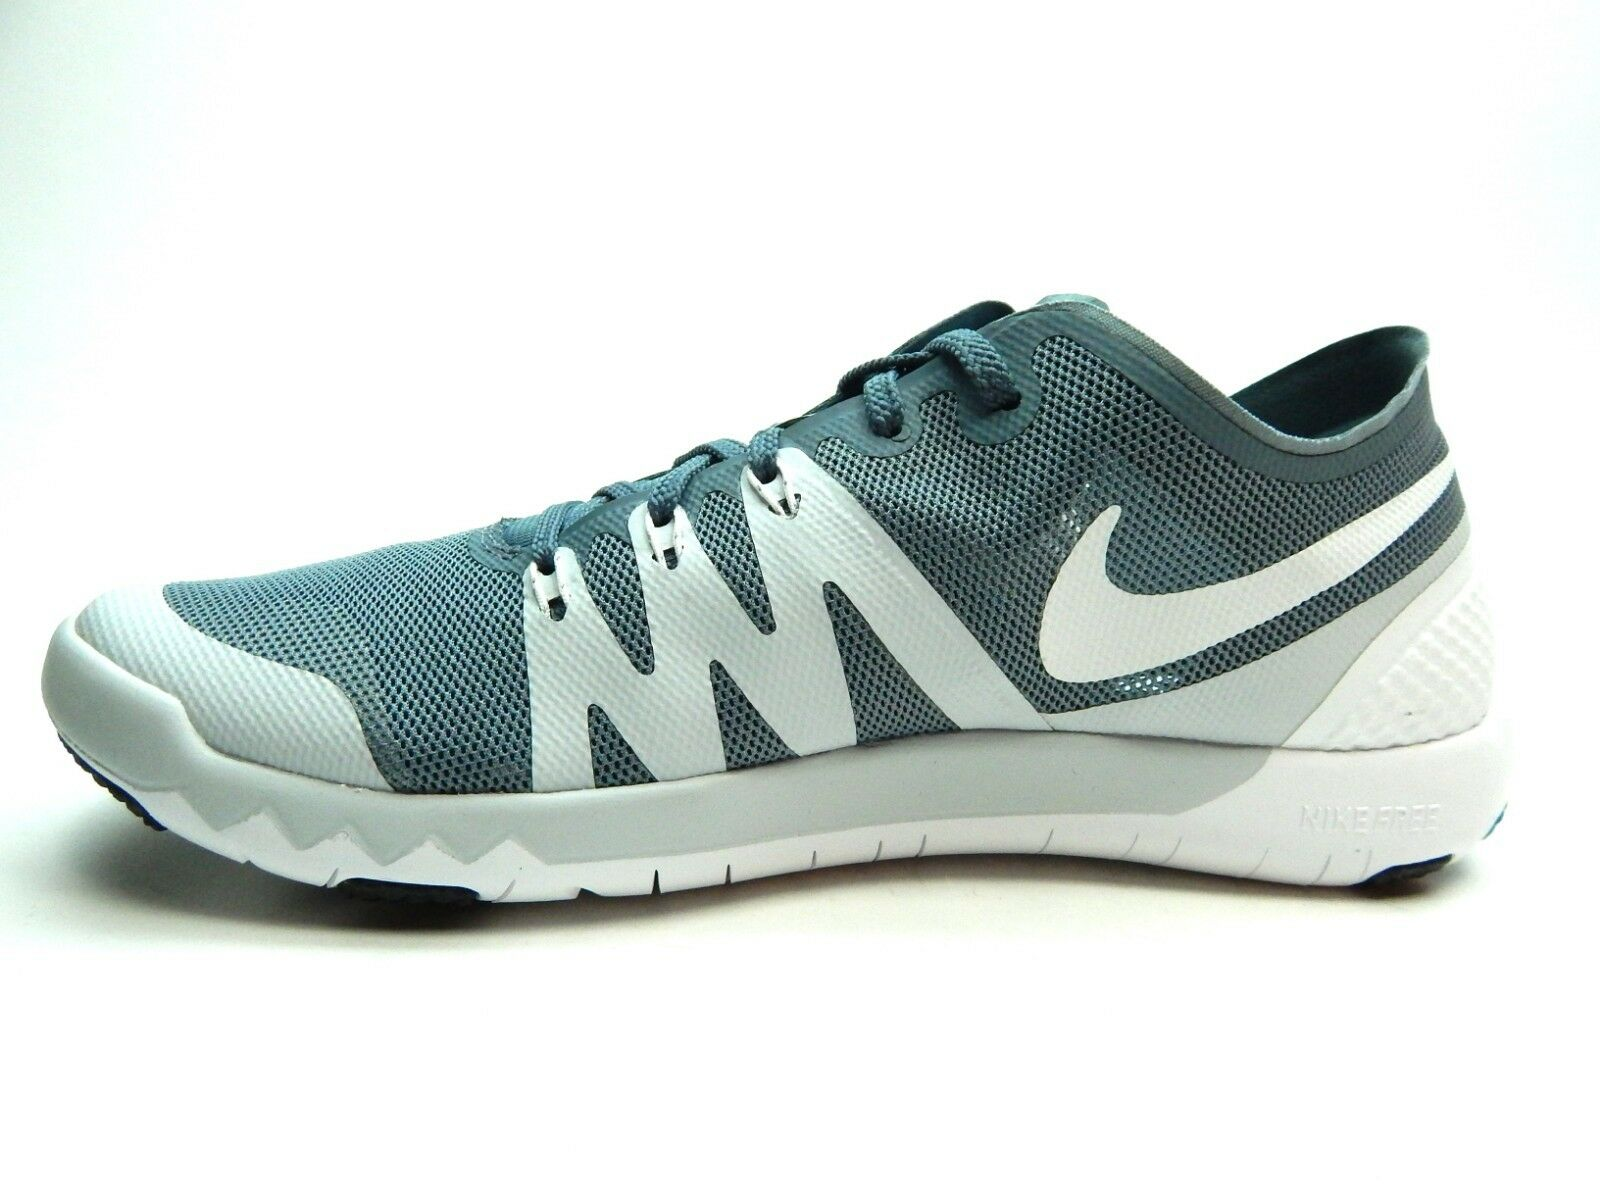 best sneakers f0dd4 86d9d ... NIKE FREE TRAINER 3.0 V3 Men shoes shoes shoes blue graphite white  705270 466 sizes 8.0 ...